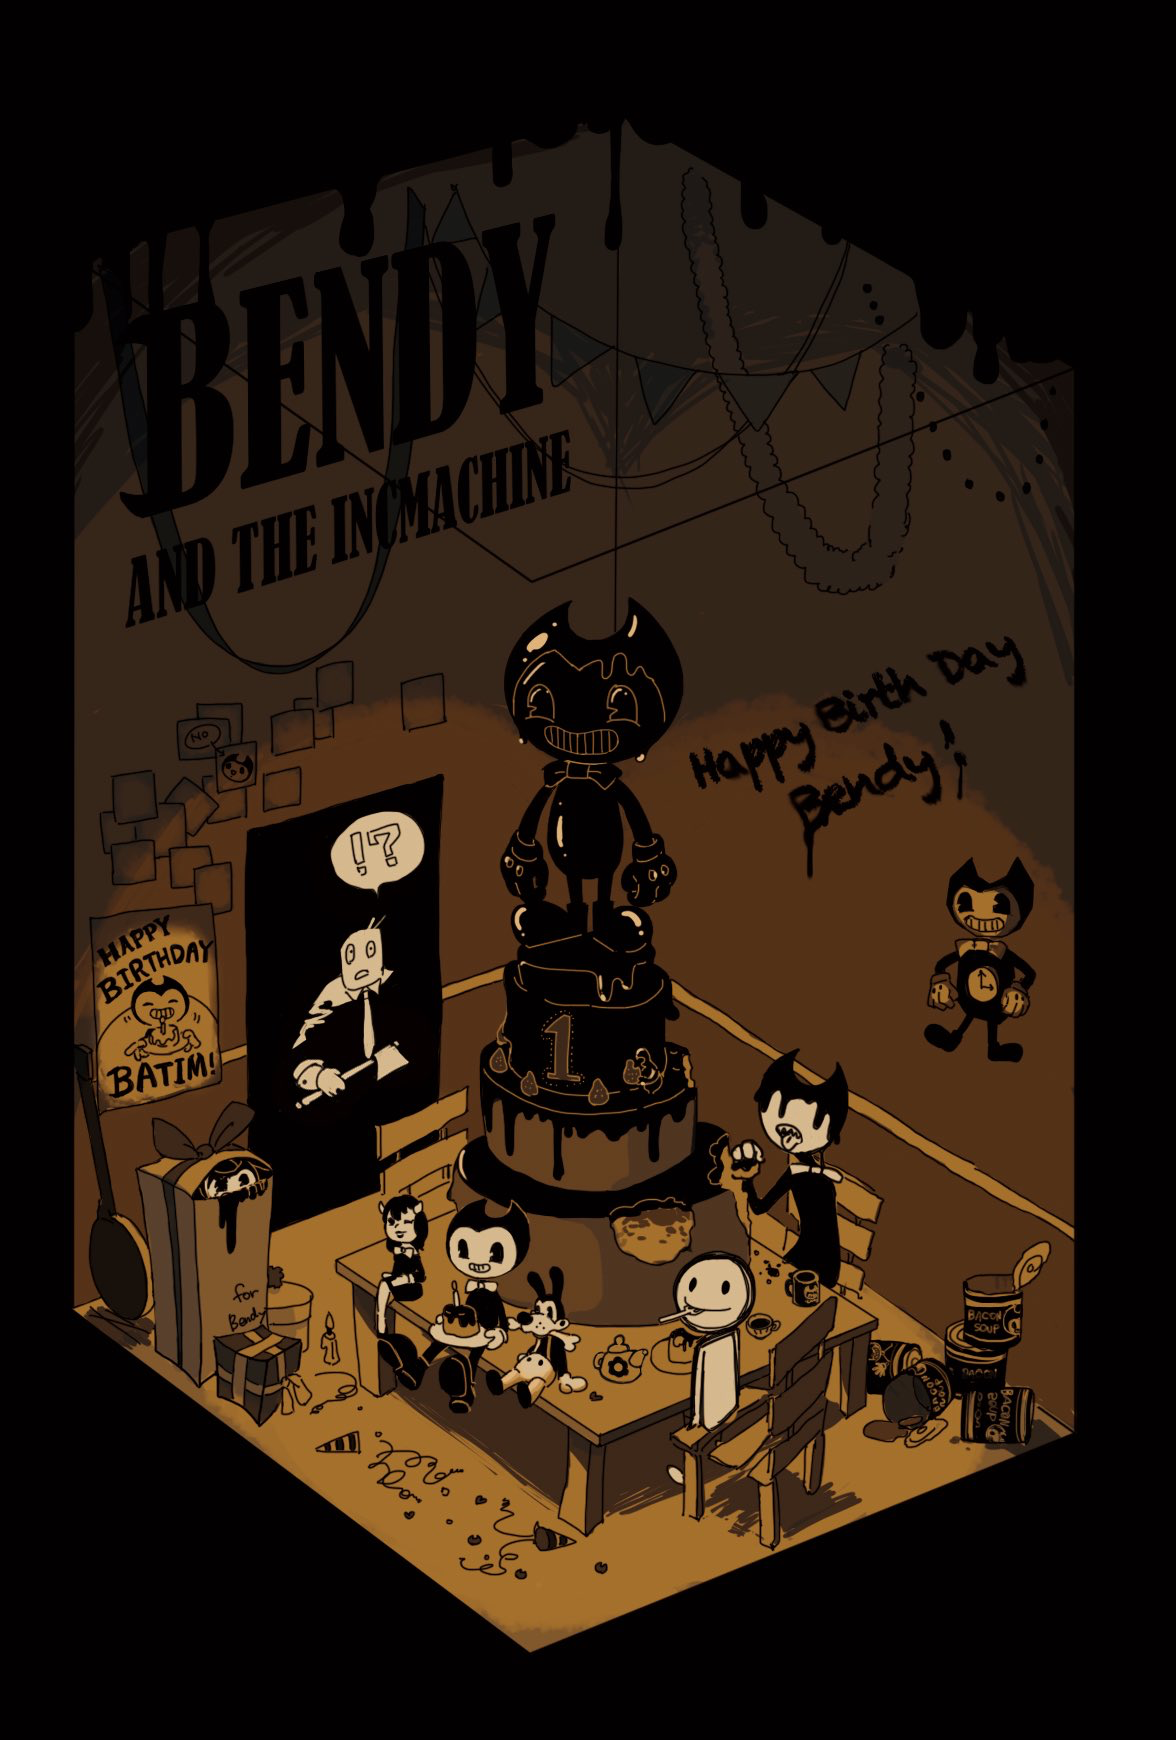 Sammy Hiding In The Box Waiting Bendy And The Ink Machine Game Art Fan Art